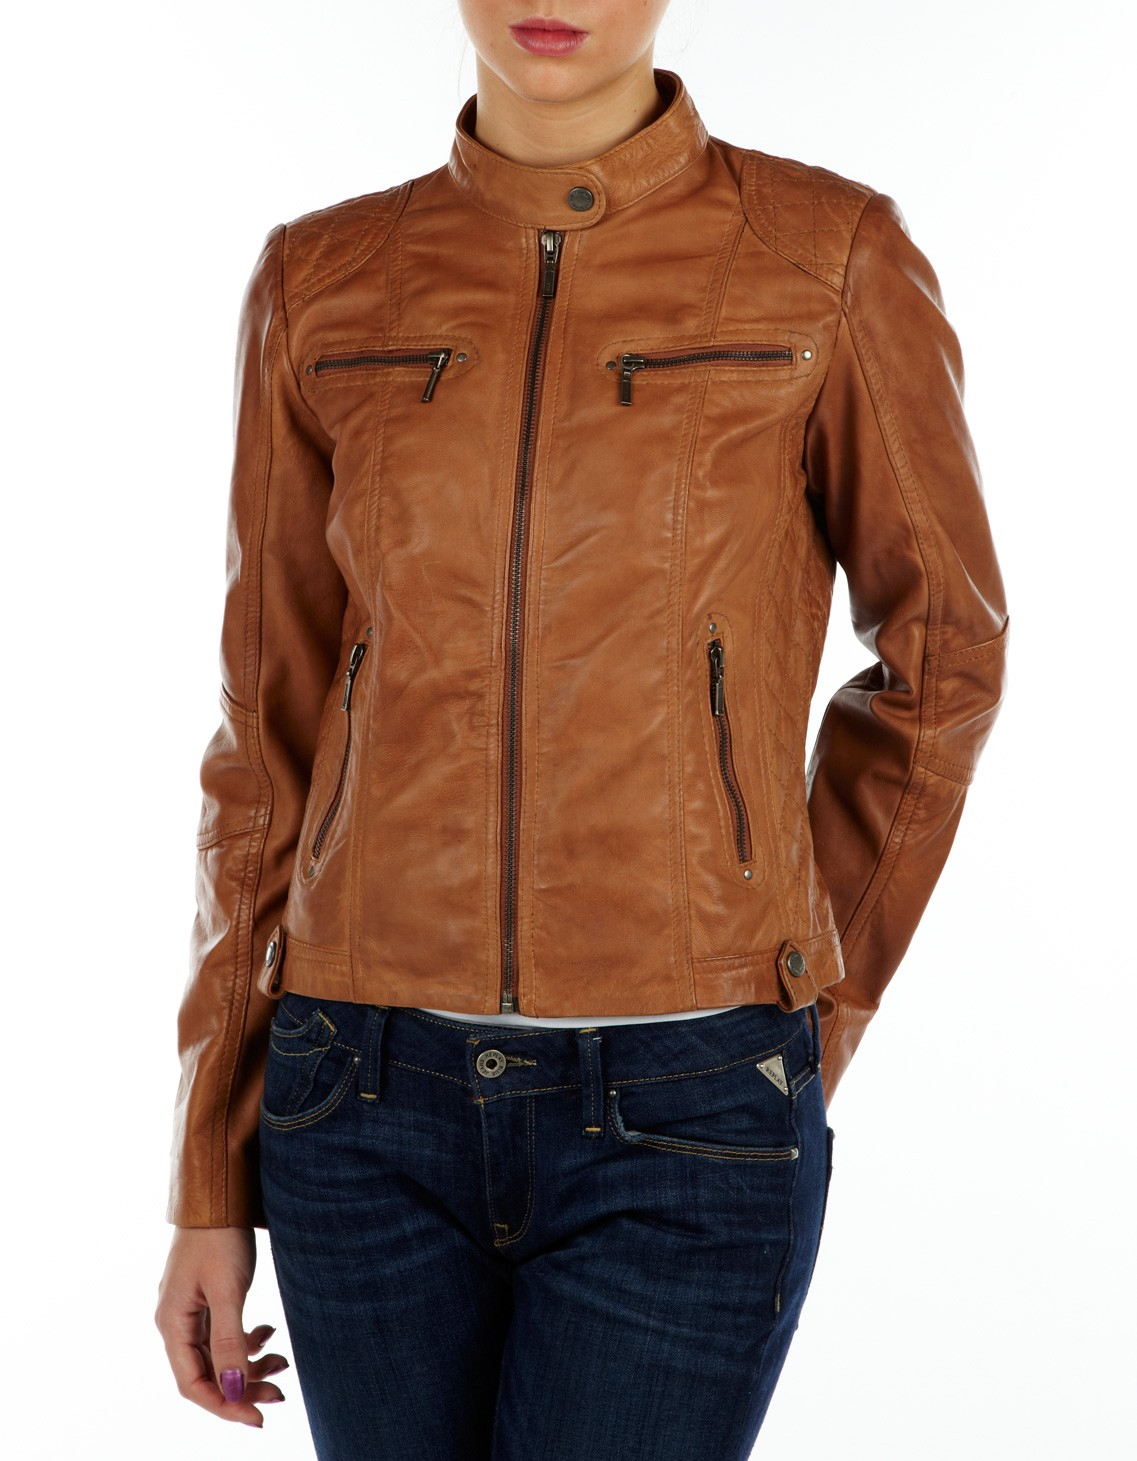 Womens tan leather jacket